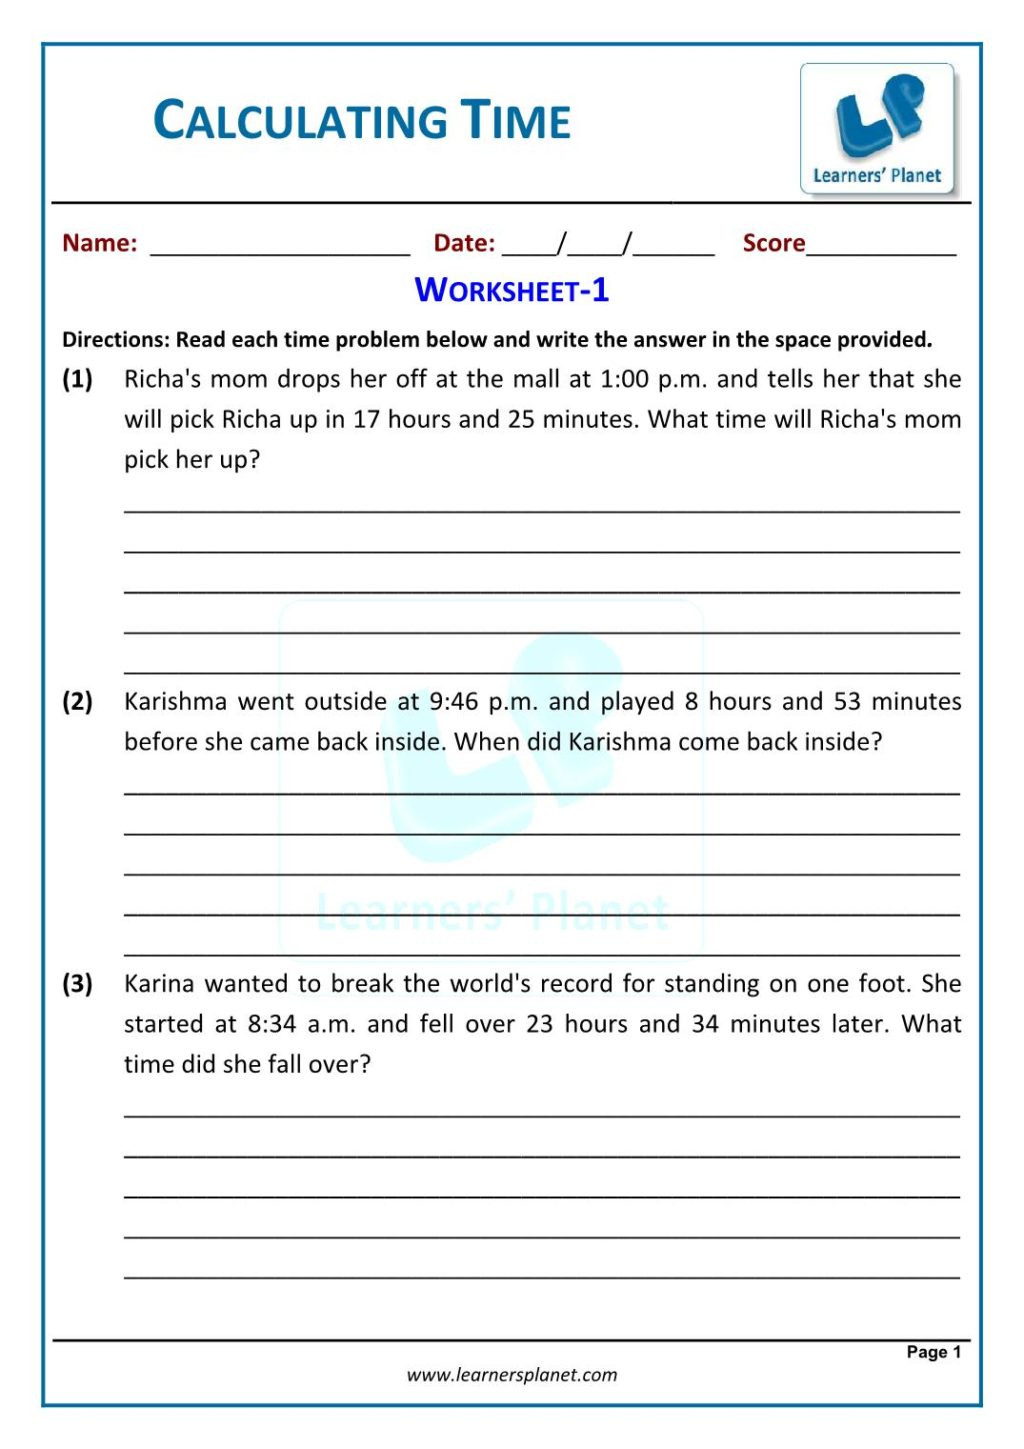 Elapsed Time Worksheets 3rd Grade Worksheet Telling Time Worksheets for 3rdde Clock Third